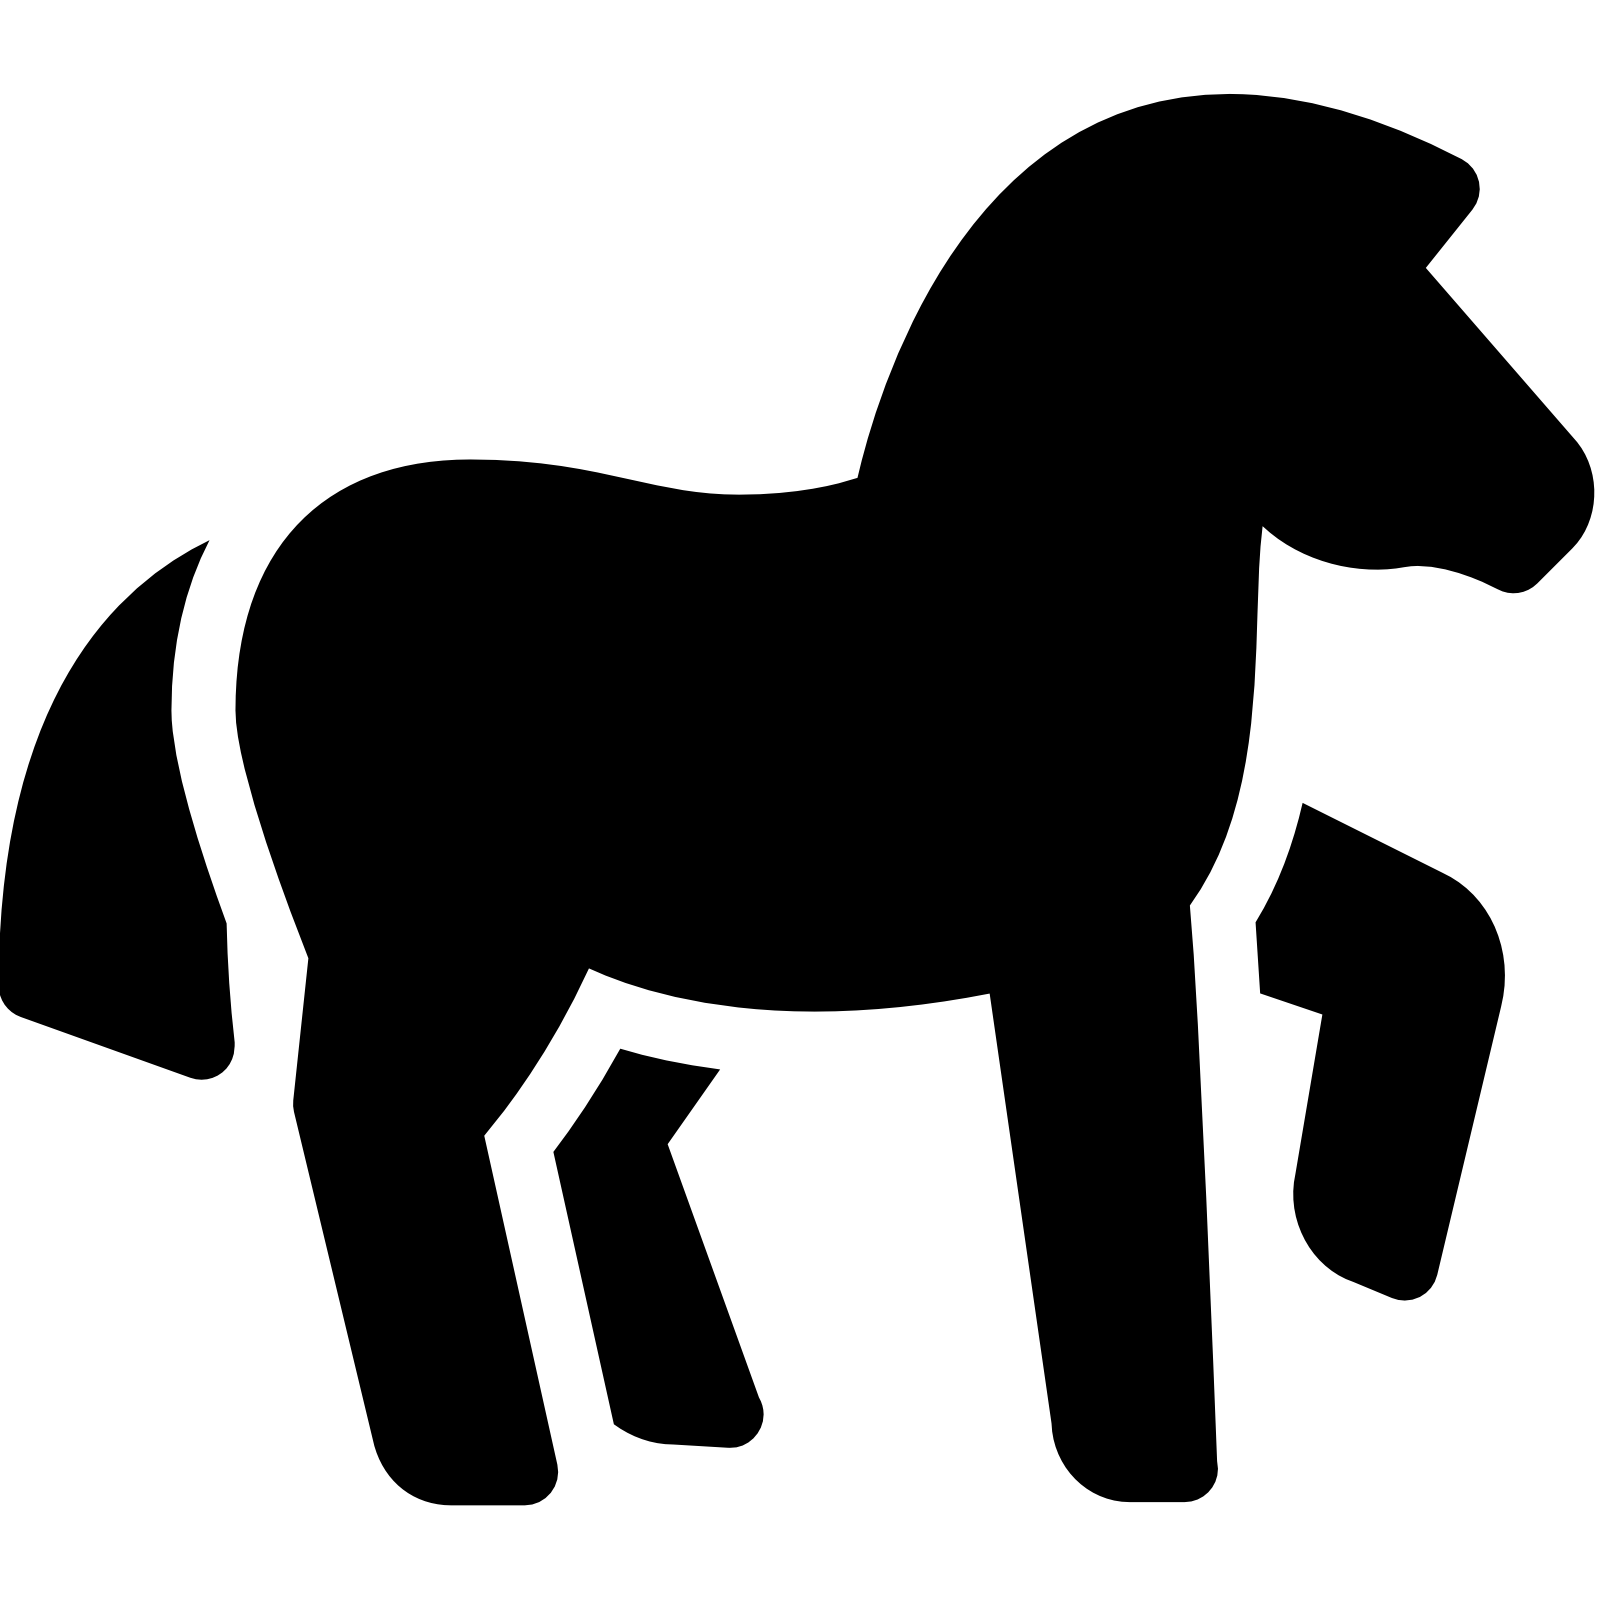 Horse Racing clipart animal tail Filled for Free Horse icon